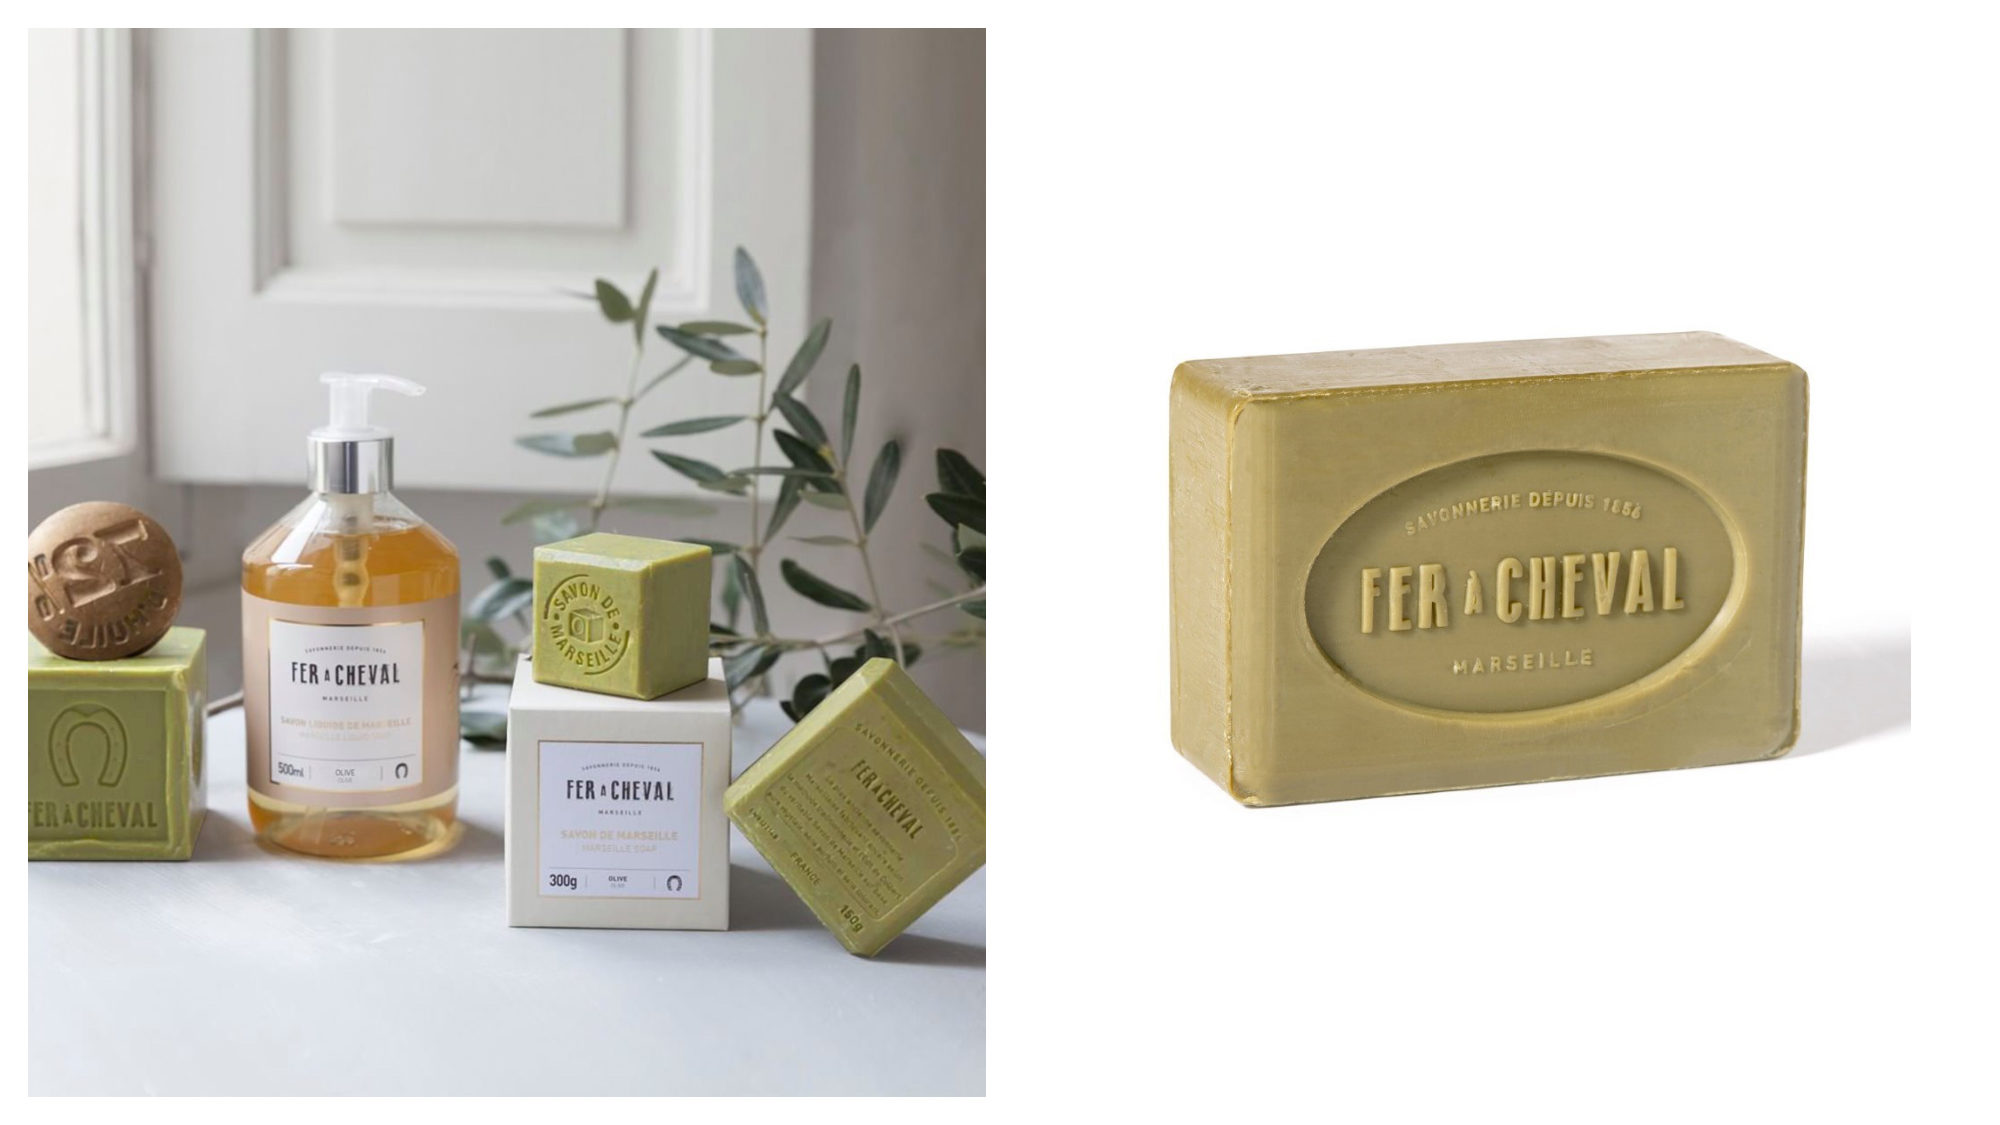 Beautifully presented olive Savon de Marseille blocks and handsoap by Fleux in Paris (left). A block of soap by French brand Fer à Cheval (right).